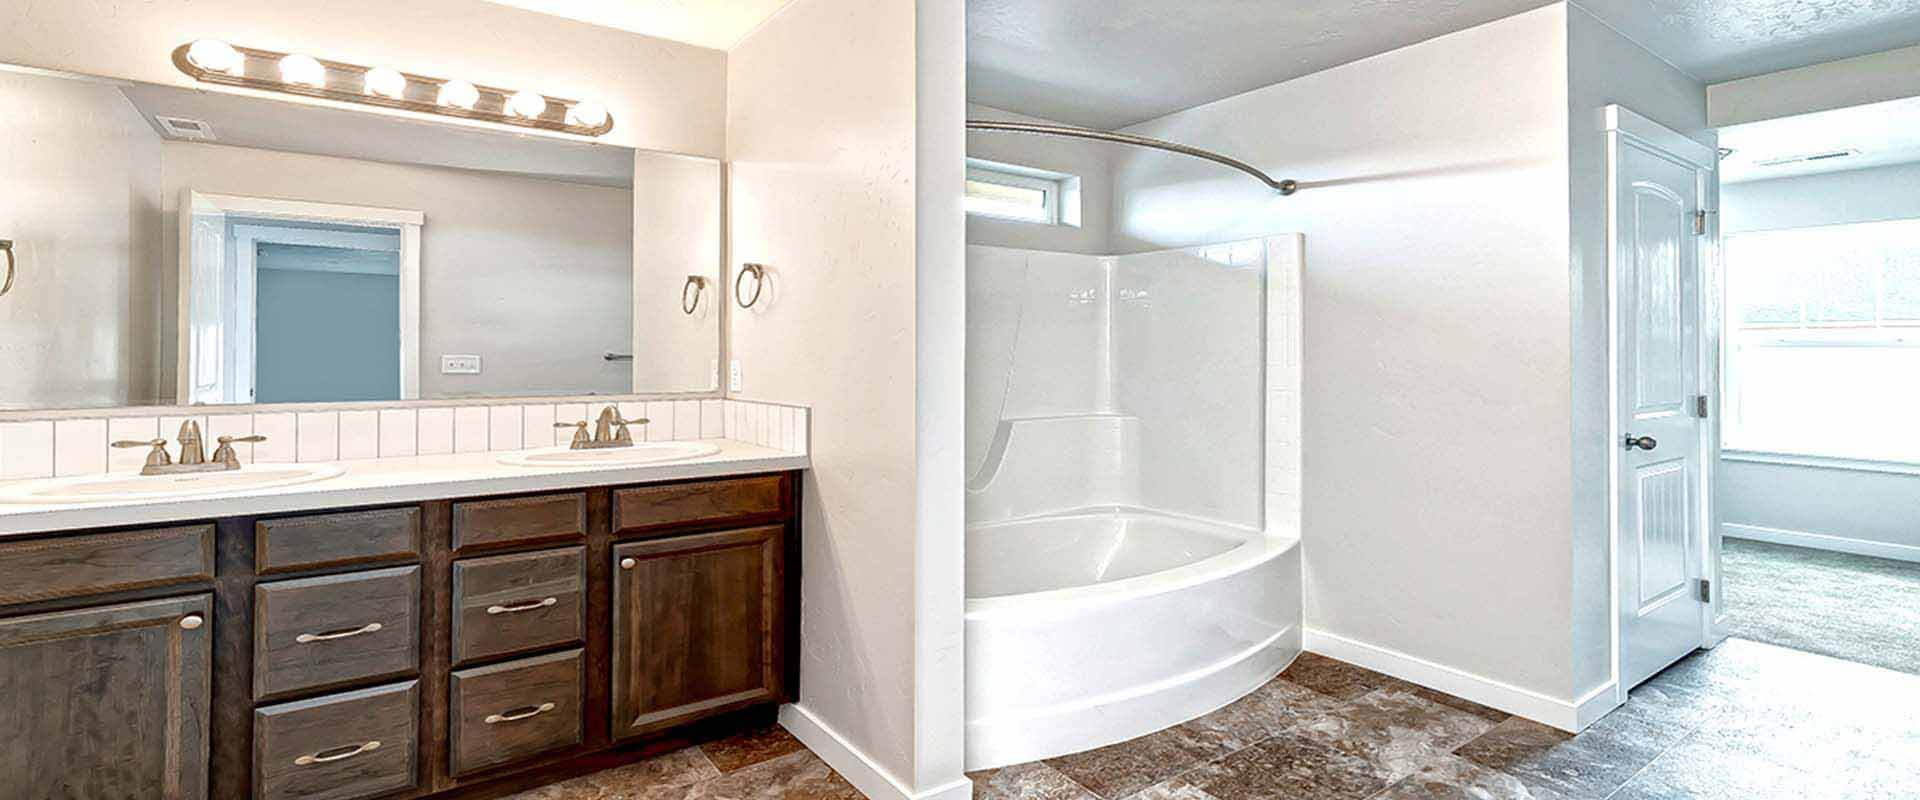 Ponderosa-new-homes-boise-idaho-hubble-homes-master-bath2.jpg